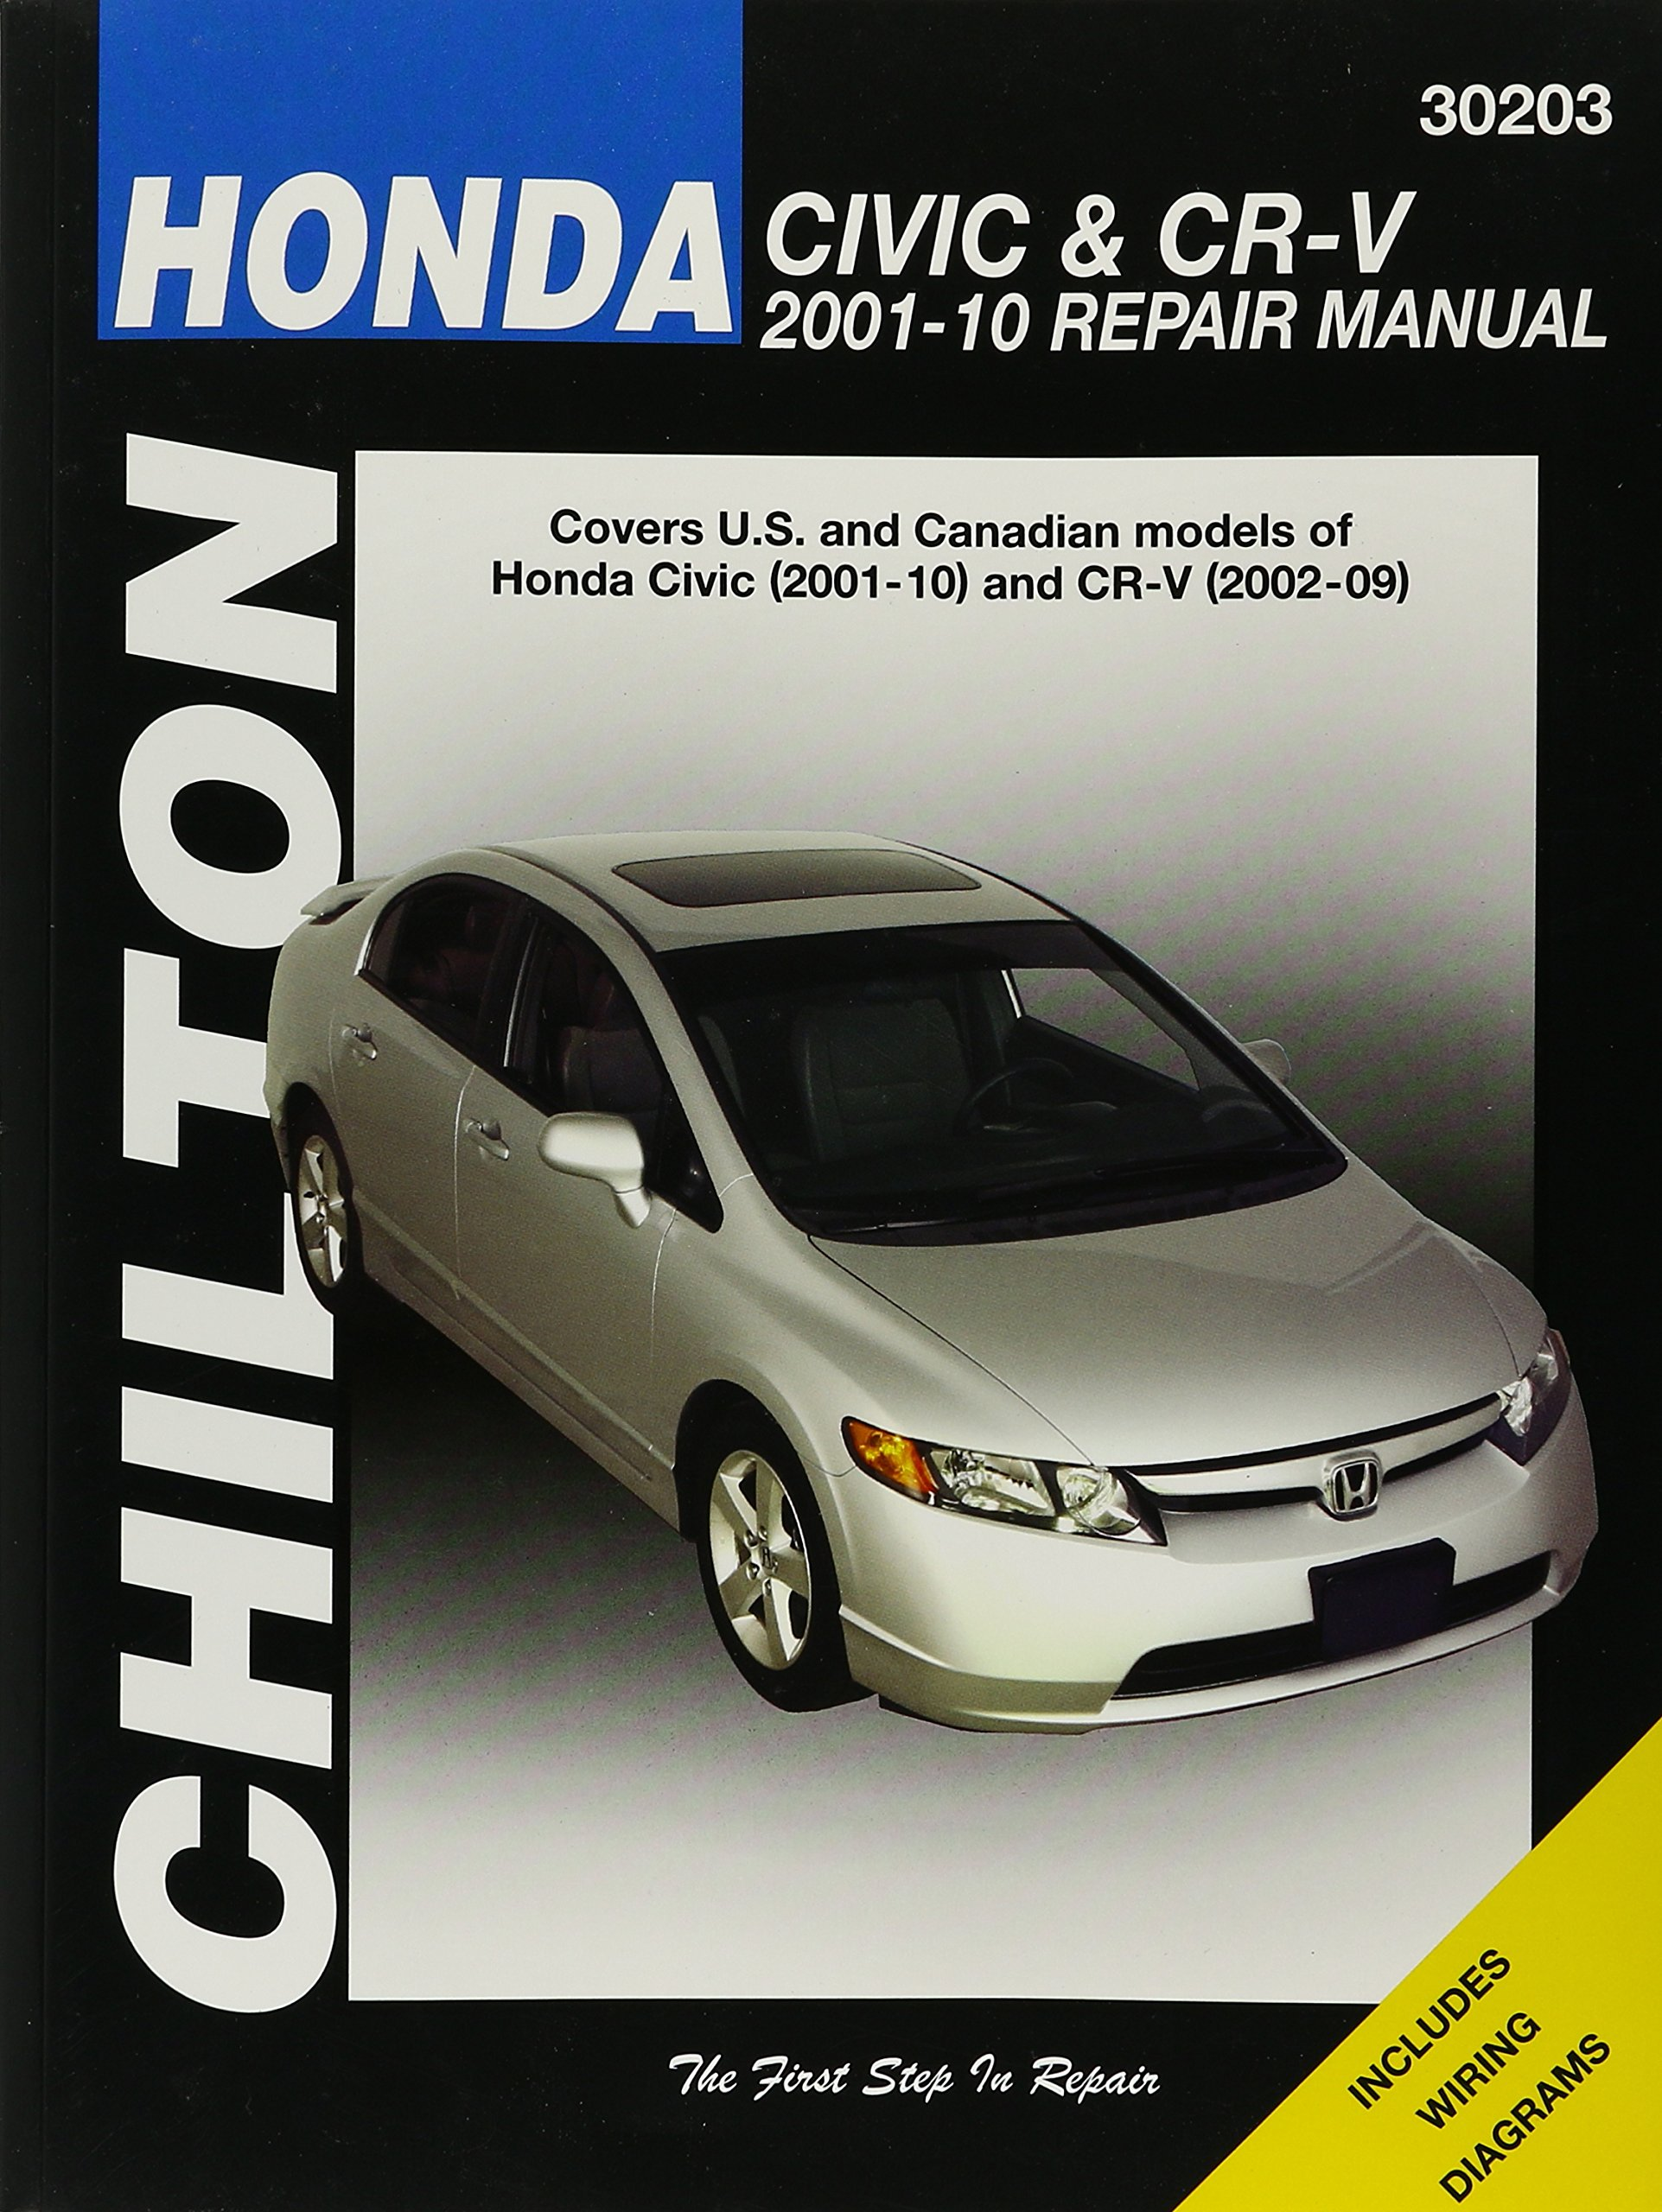 honda civic 2007 manual guide